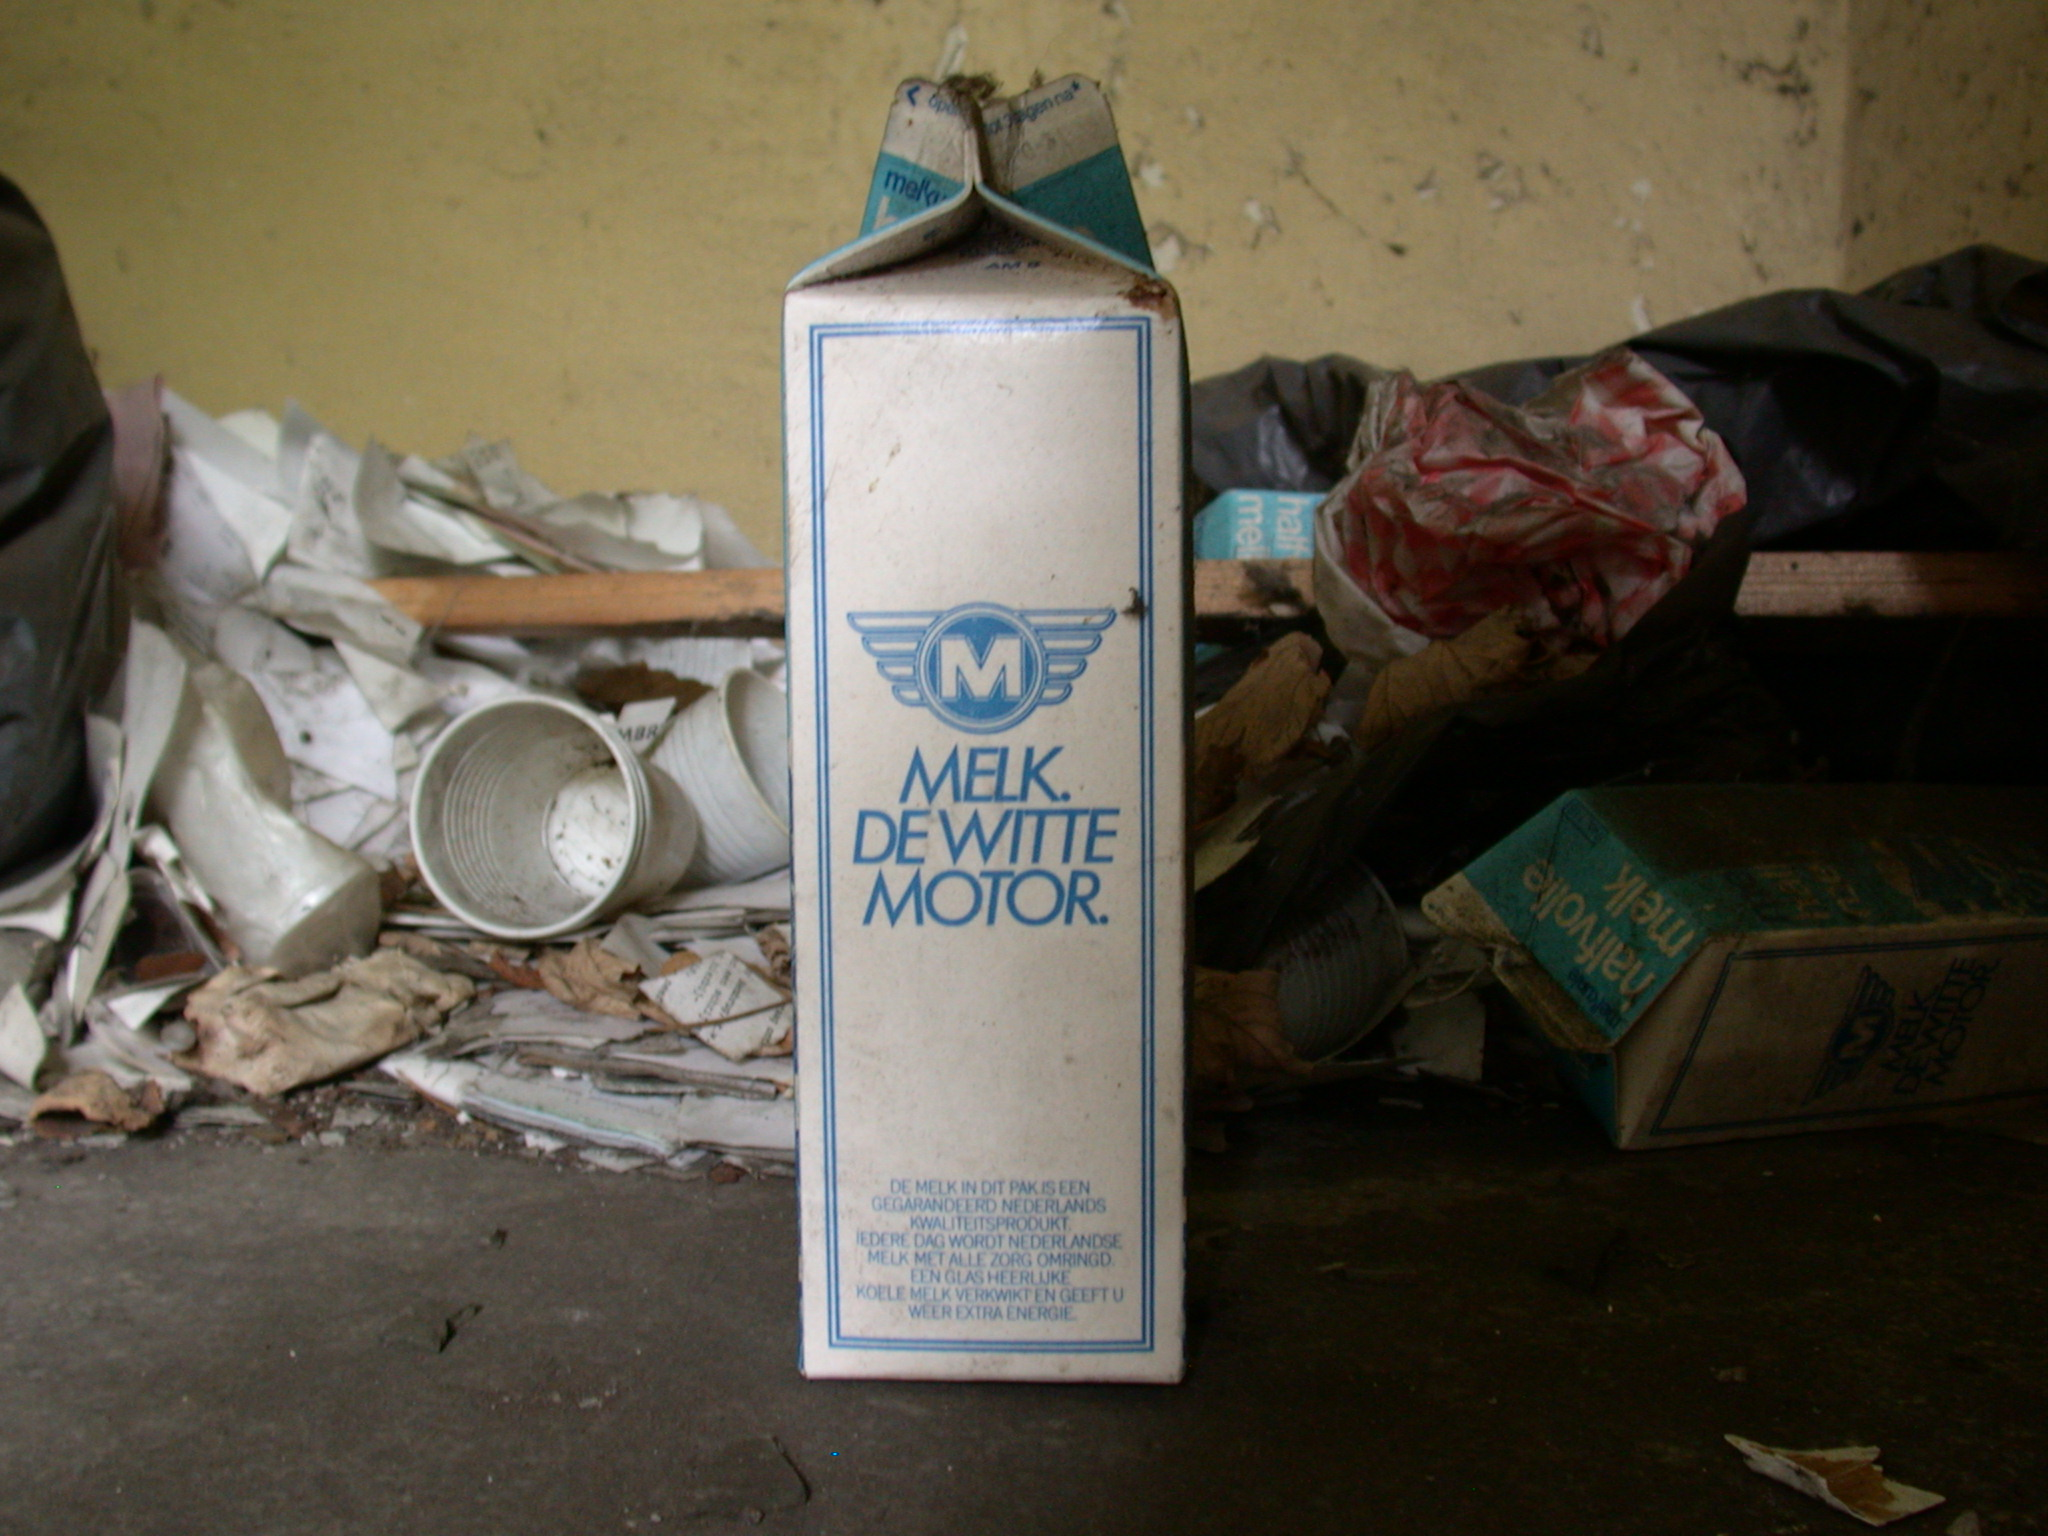 objects household milk pack milkpack dirty old typo typography melkdewittemotor melk de witte motor melkunie texture